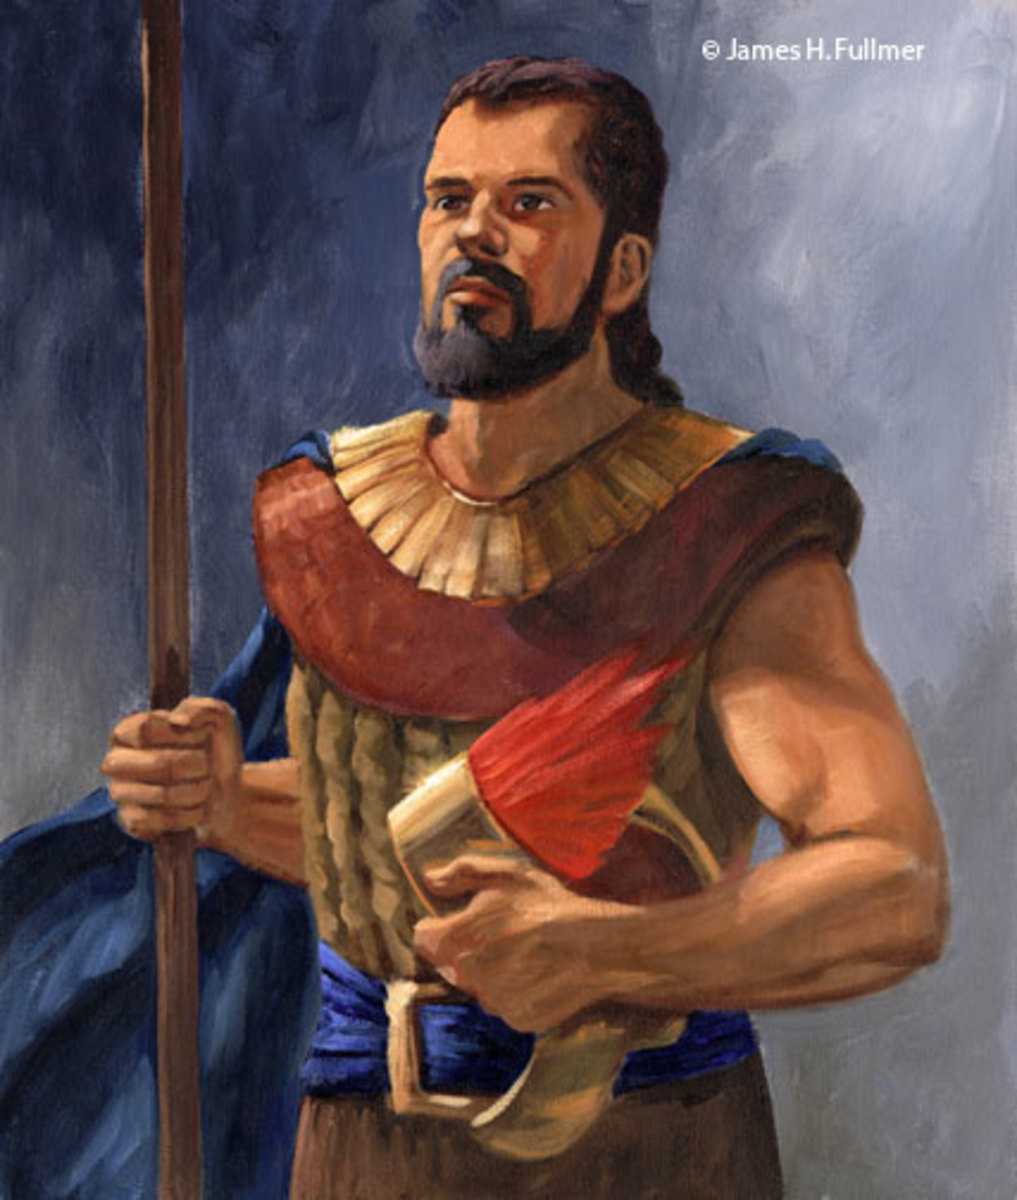 The Legacy Torch of Faith: Helaman